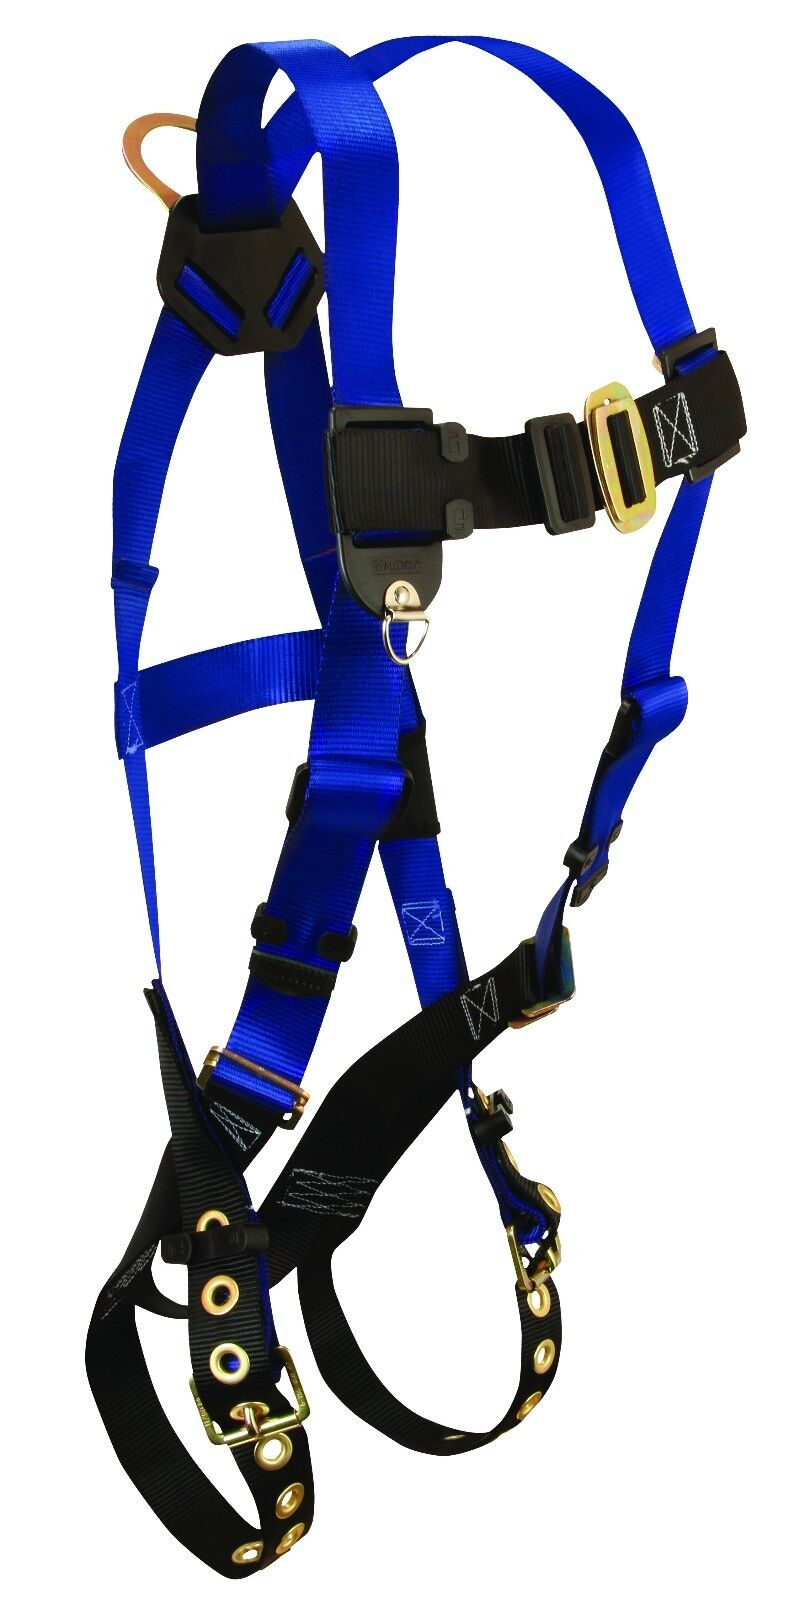 Falltech 7016 Contractor Harness W/Tongue Buckle Legs & 1 D-Ring, Universal Size Business & Industrial